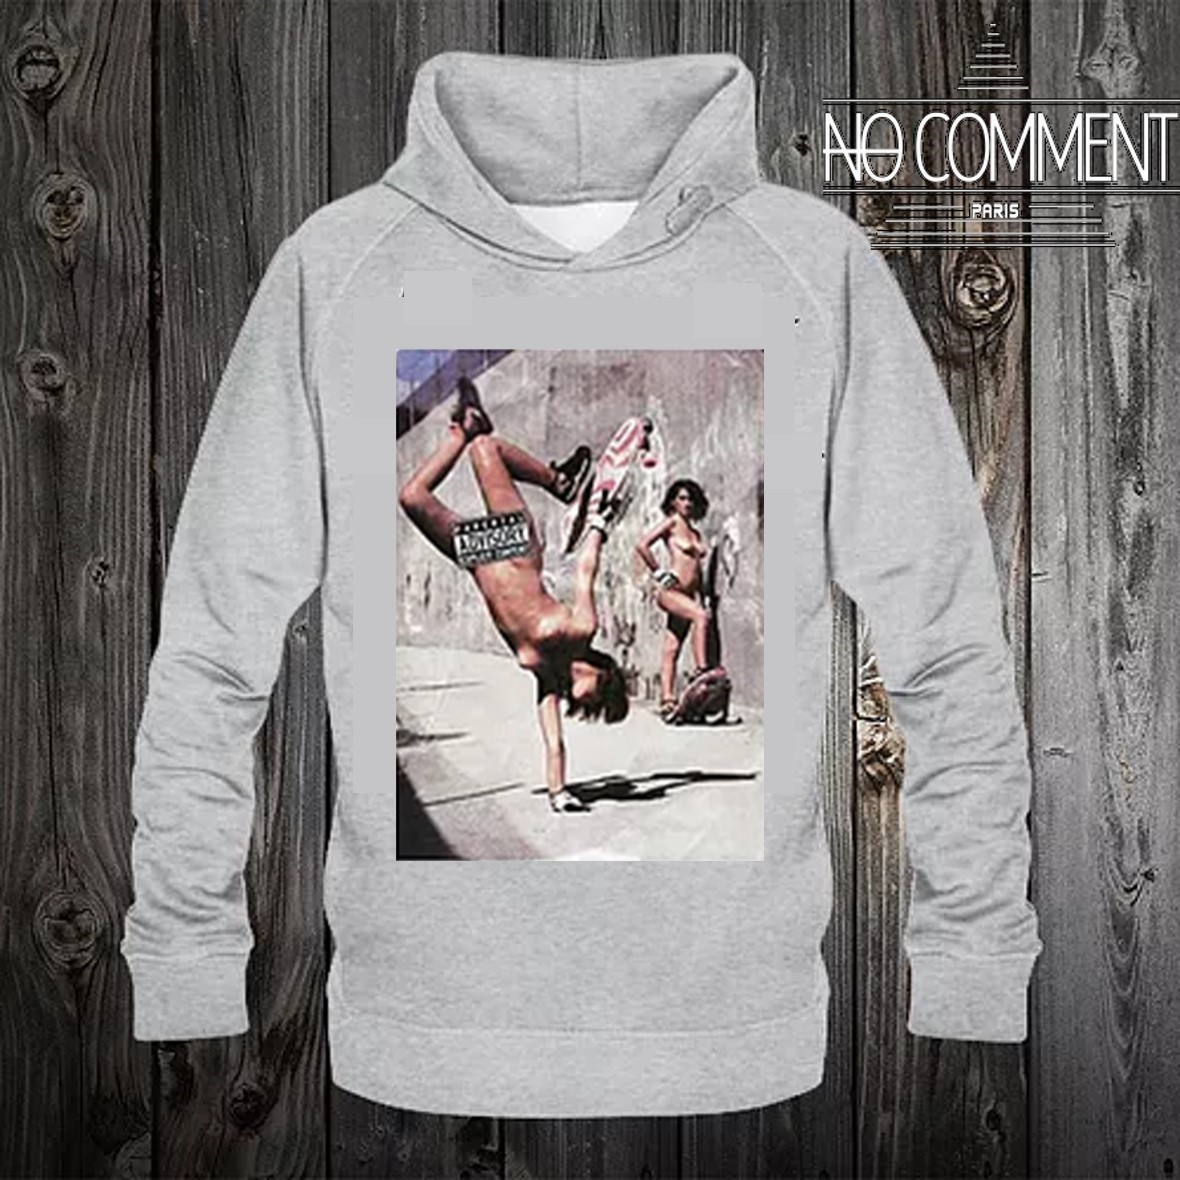 NO COMMENT Hoodies 【Rock-skate Sexy Girls】